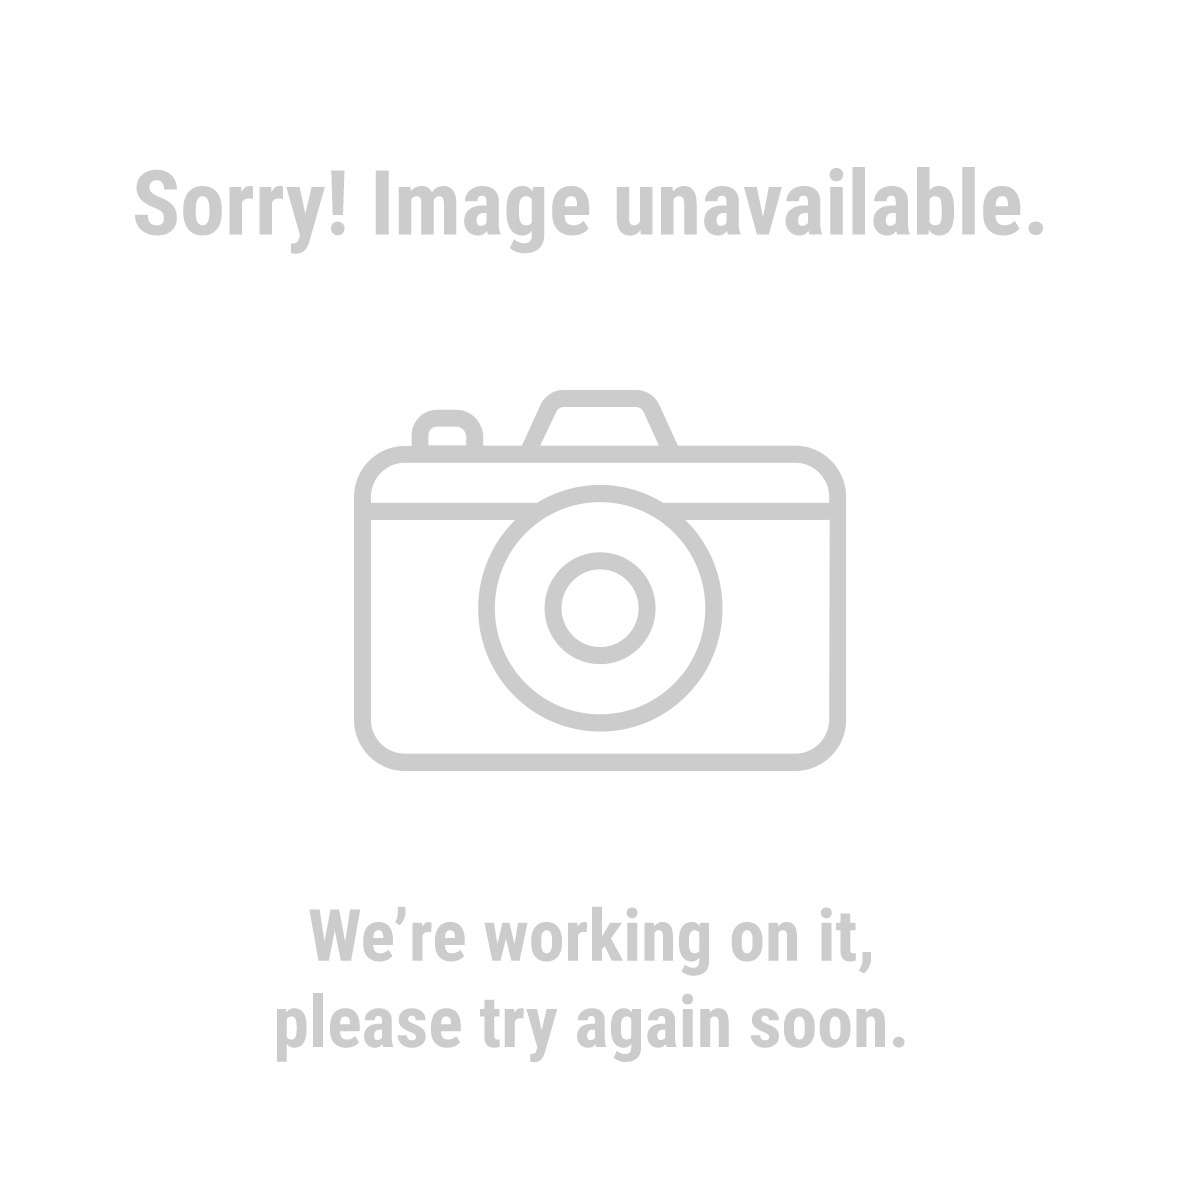 Snap Ring Pliers with Interchangeable Heads